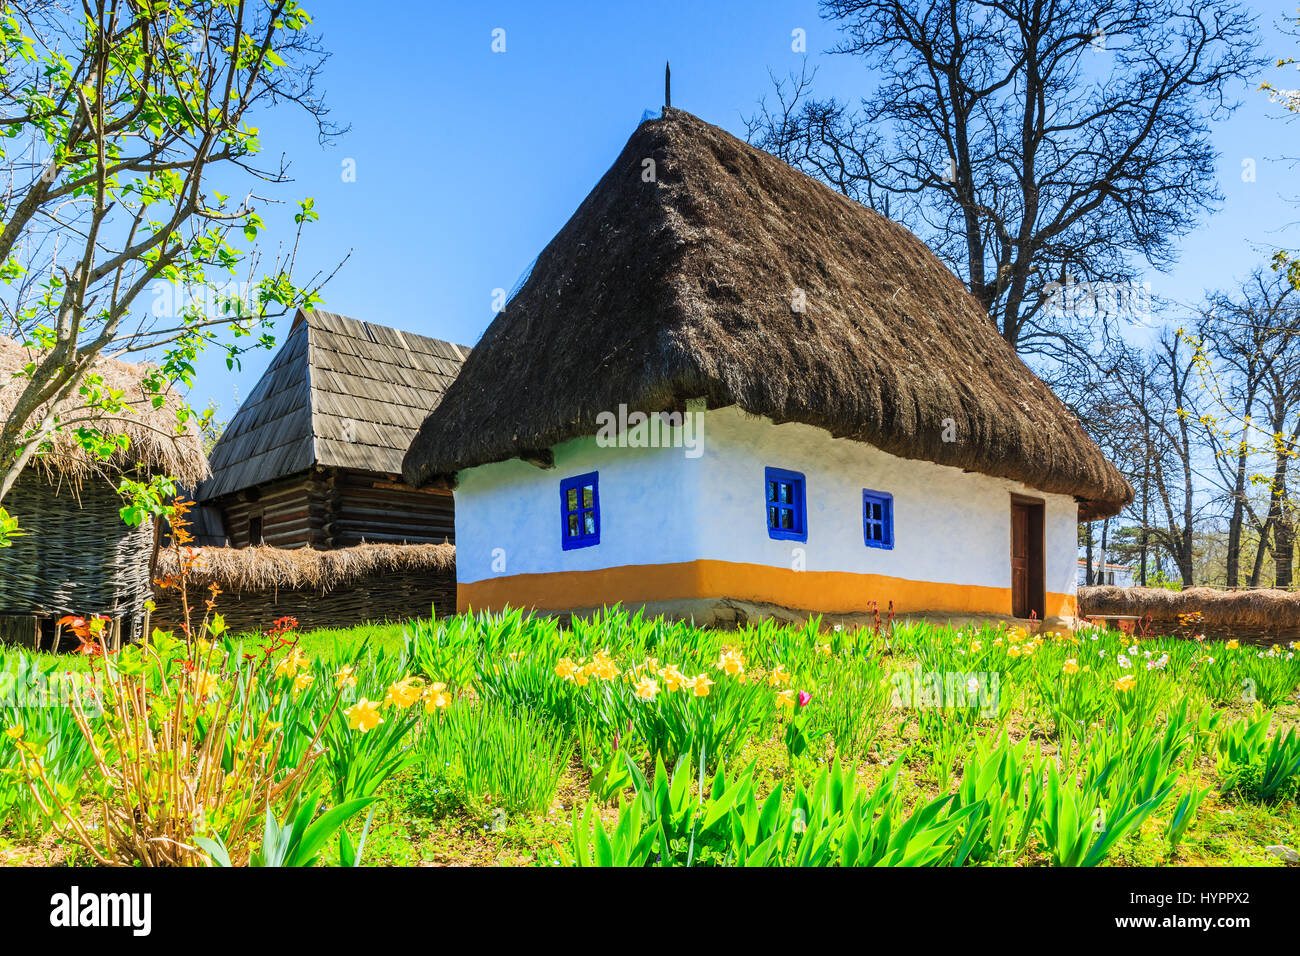 Bucharest, Romania. Old traditional house in the village museum. - Stock Image